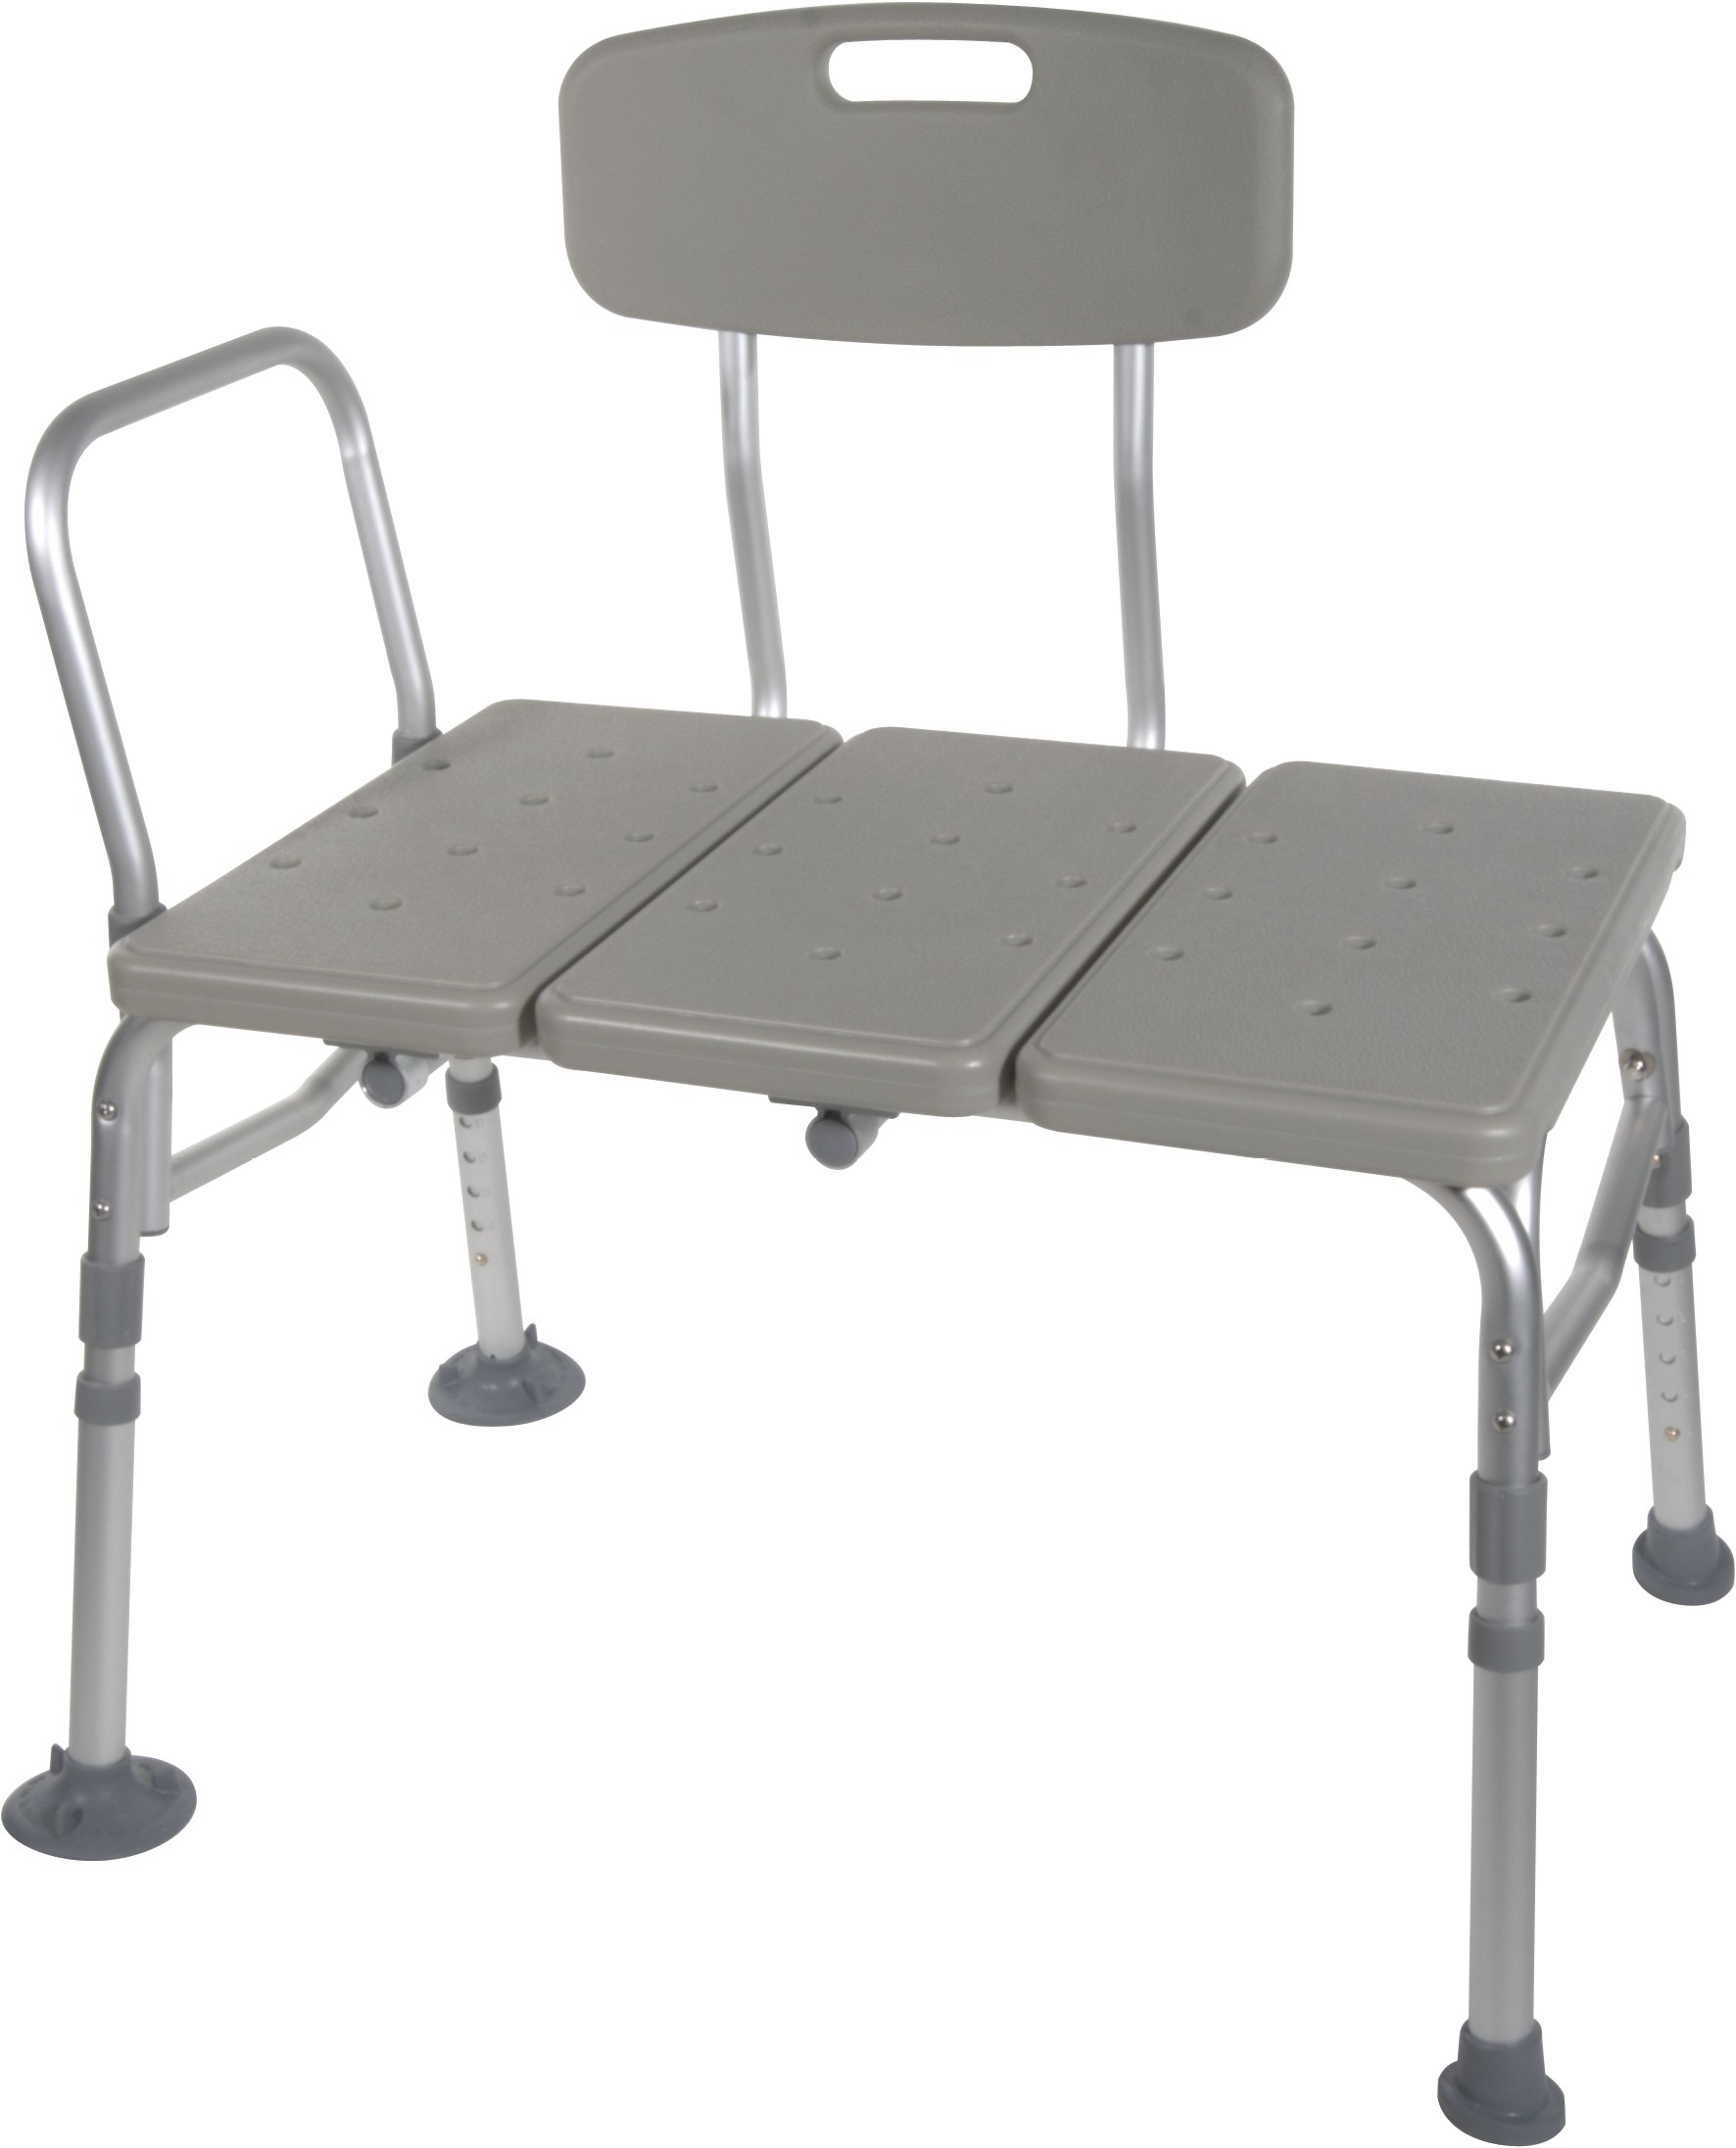 Cool Model Dr12011 1 Bariatric Tub Transfer Bench Dailytribune Chair Design For Home Dailytribuneorg